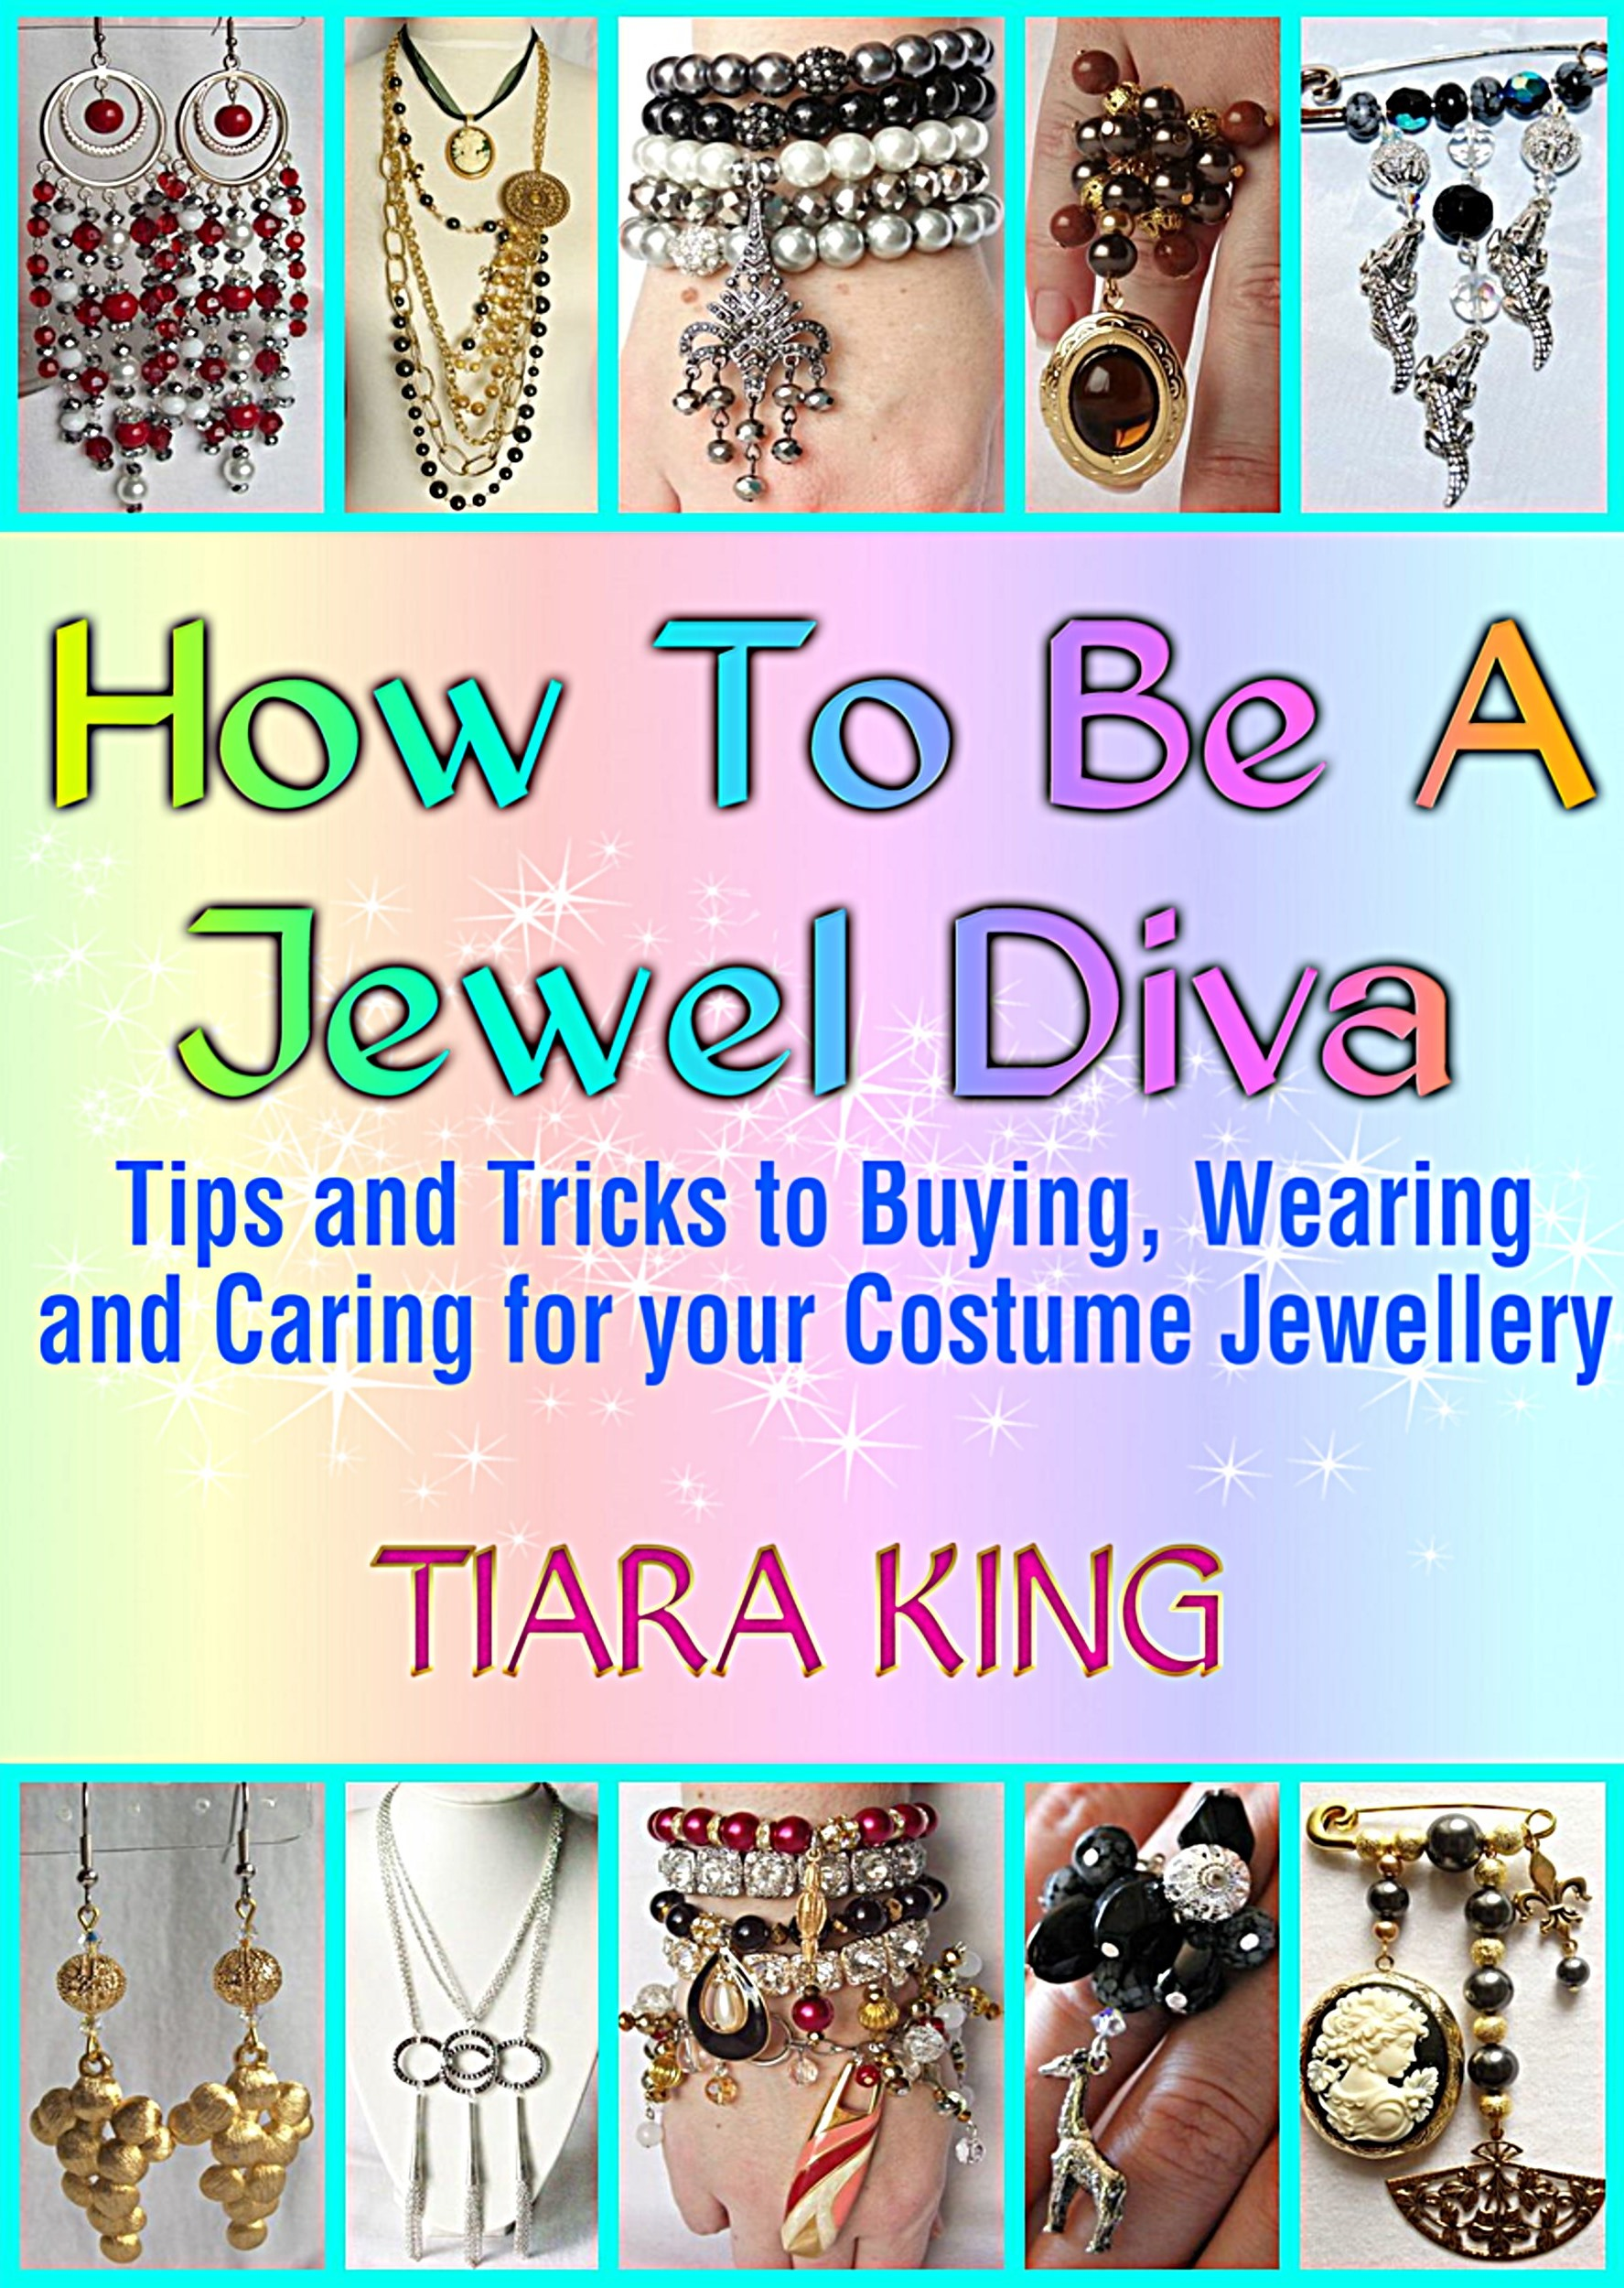 Tiara King How To Be A Jewel Diva